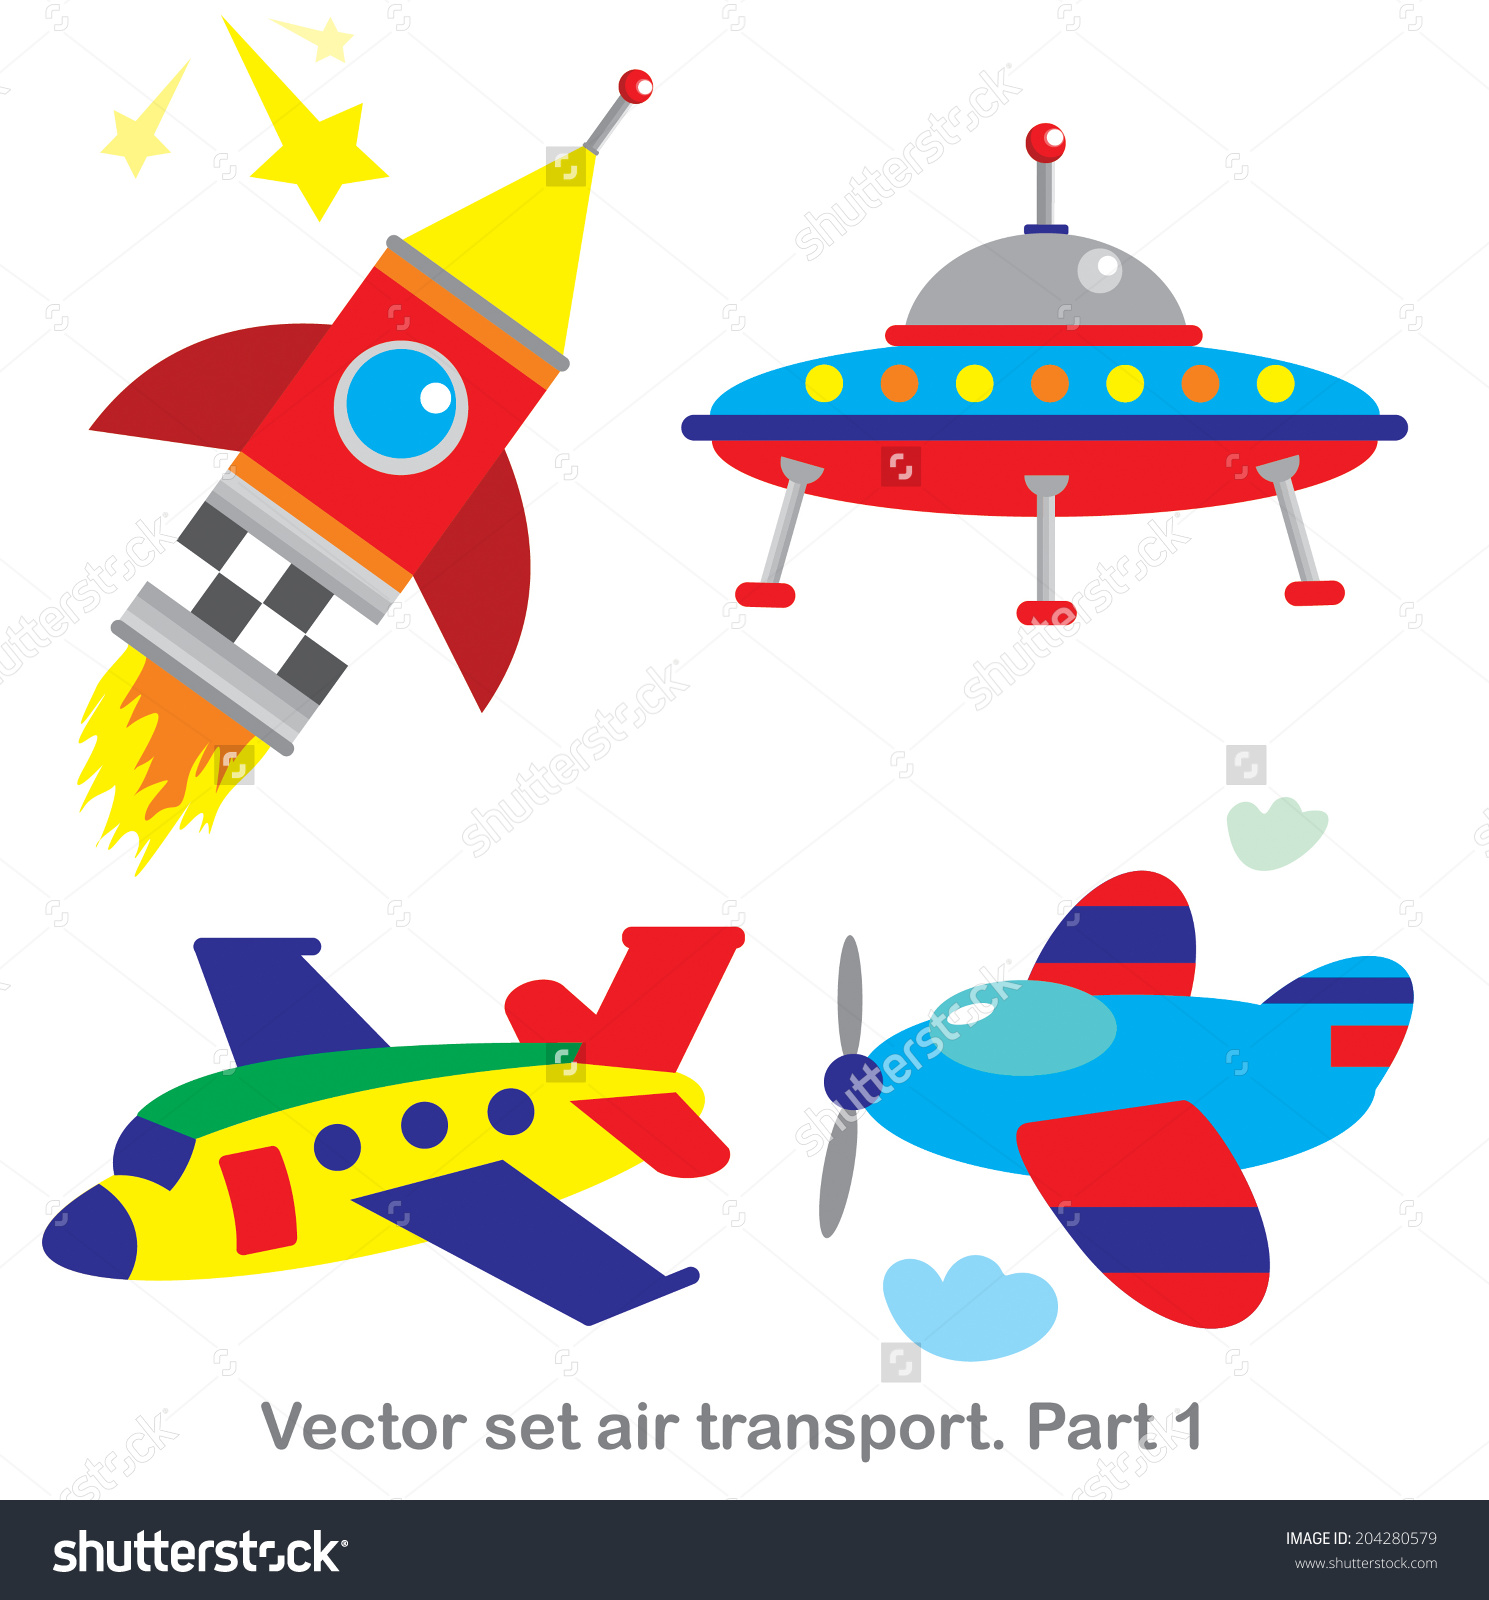 Vector Clip Art Set Air Transportpart Stock Vector 204280579.